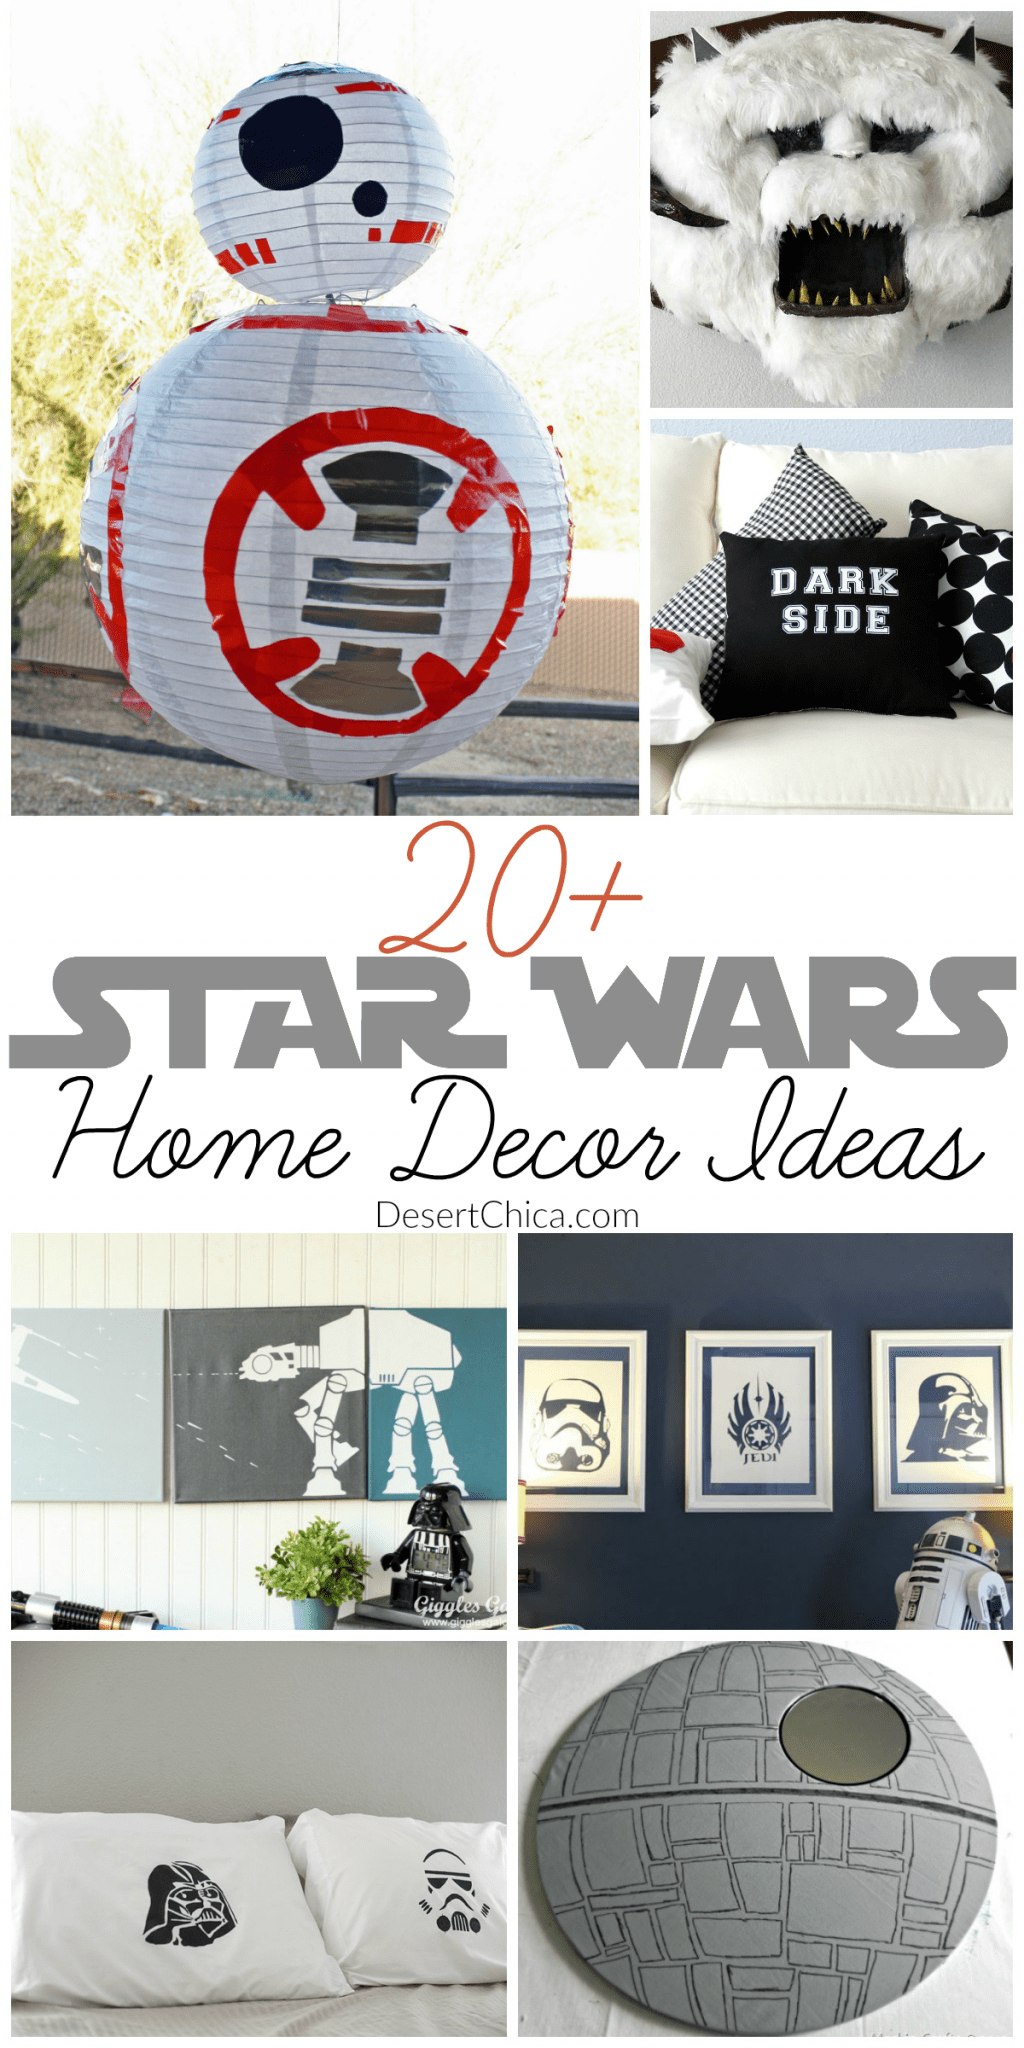 20  Star Wars Home Decor Ideas   Desert Chica 20  Star Wars Home Decor Ideas